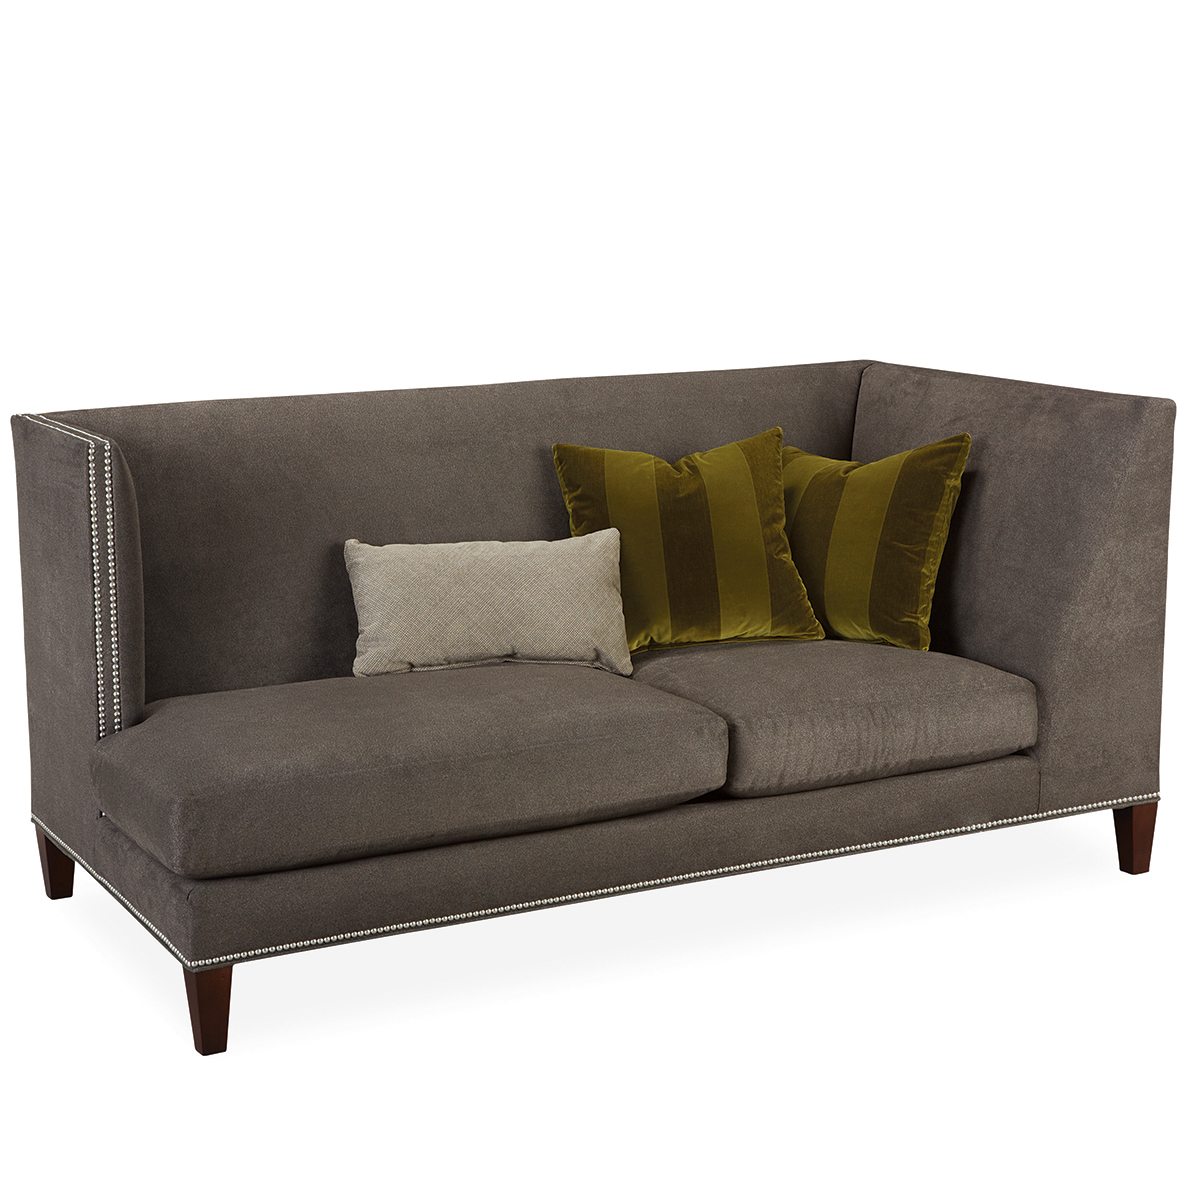 Series_upholstered_corner-sofa_4800_Lee_Industires.jpg